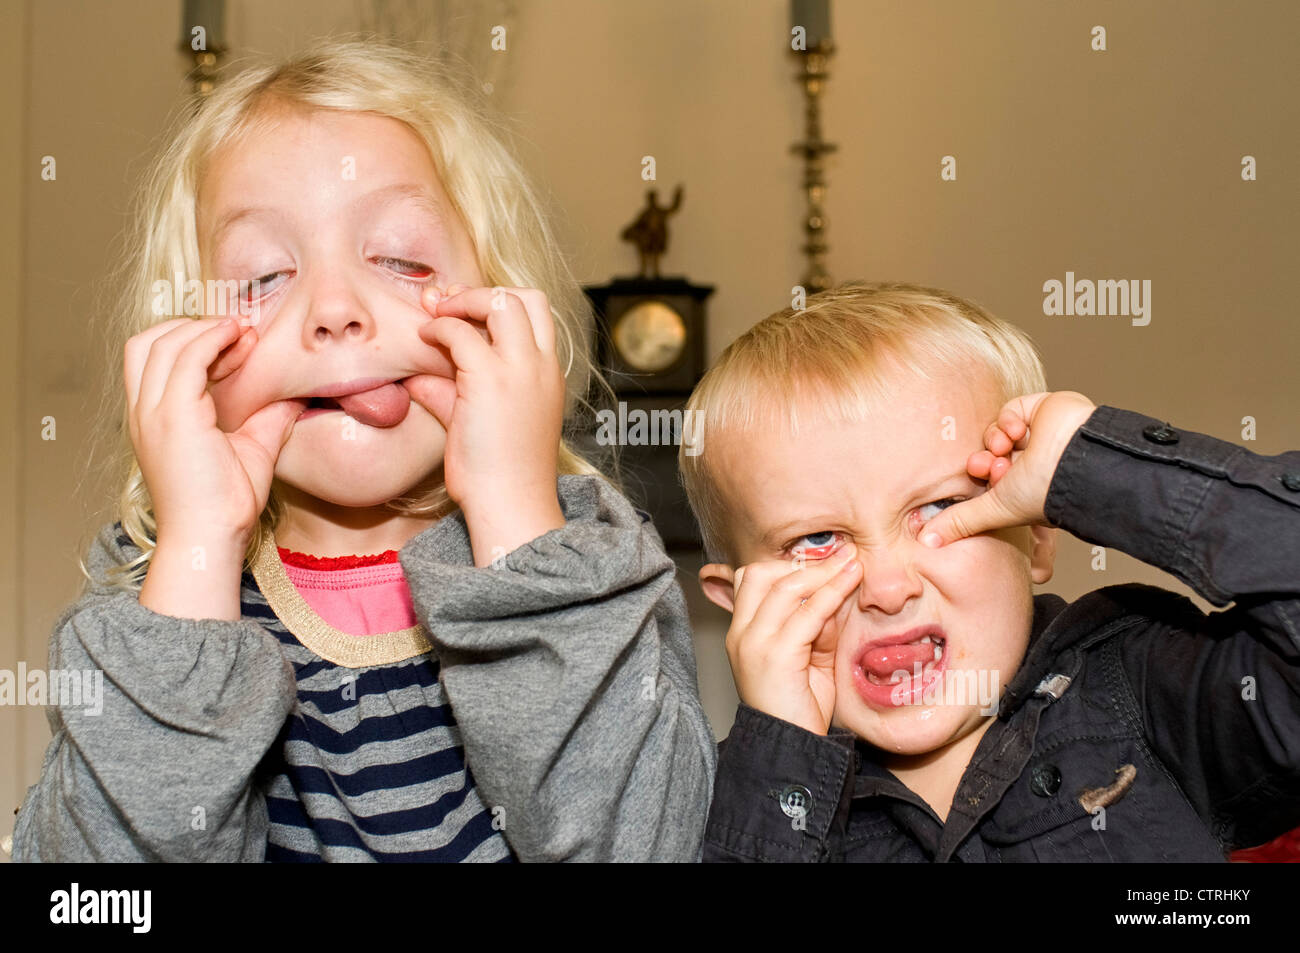 Brother And Sister Pulling A Funny Face Stock Photo 49691263 Alamy